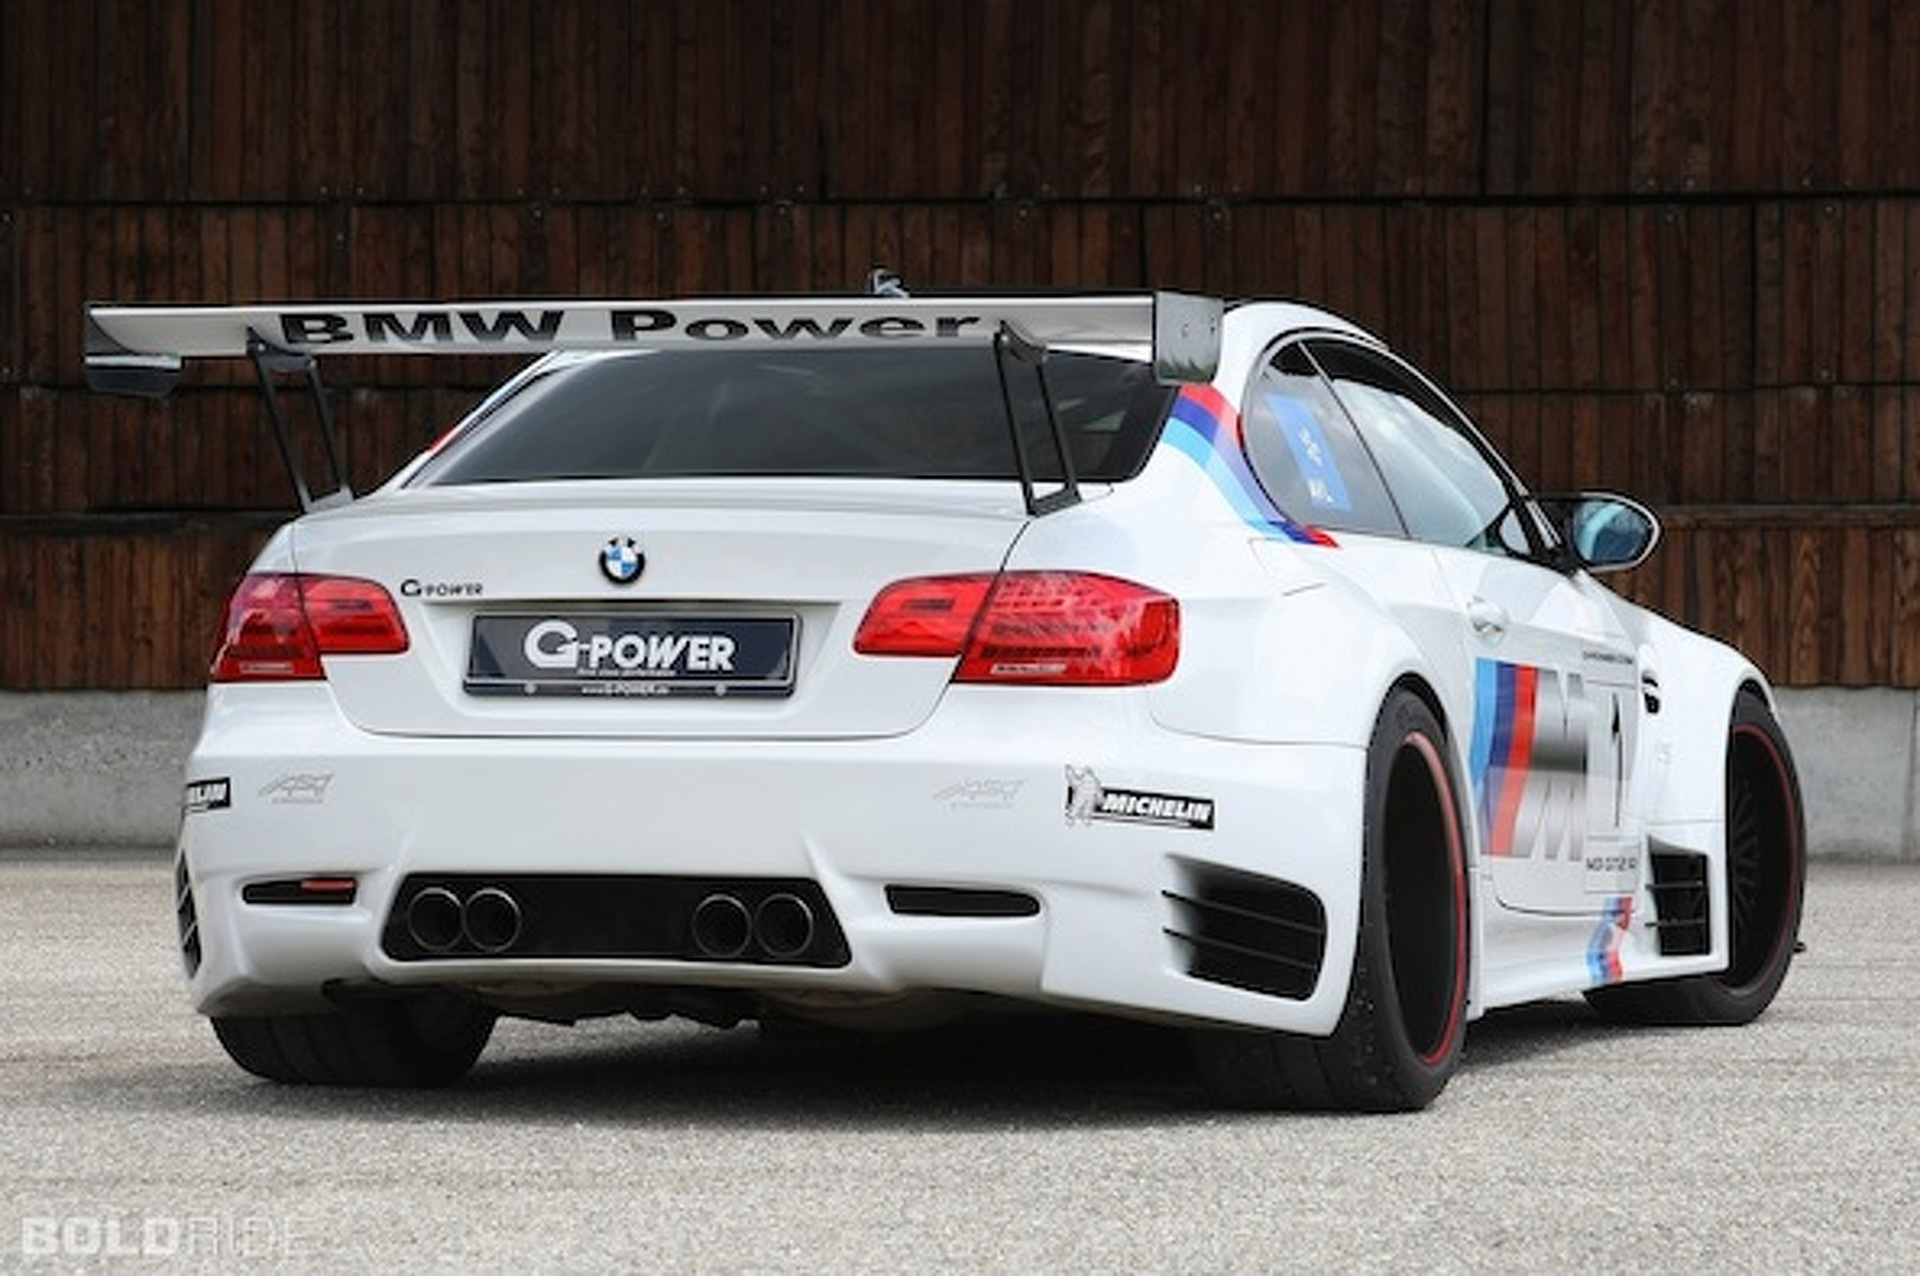 Bold Ride of the Week: G-Power BMW M3 GT2 R